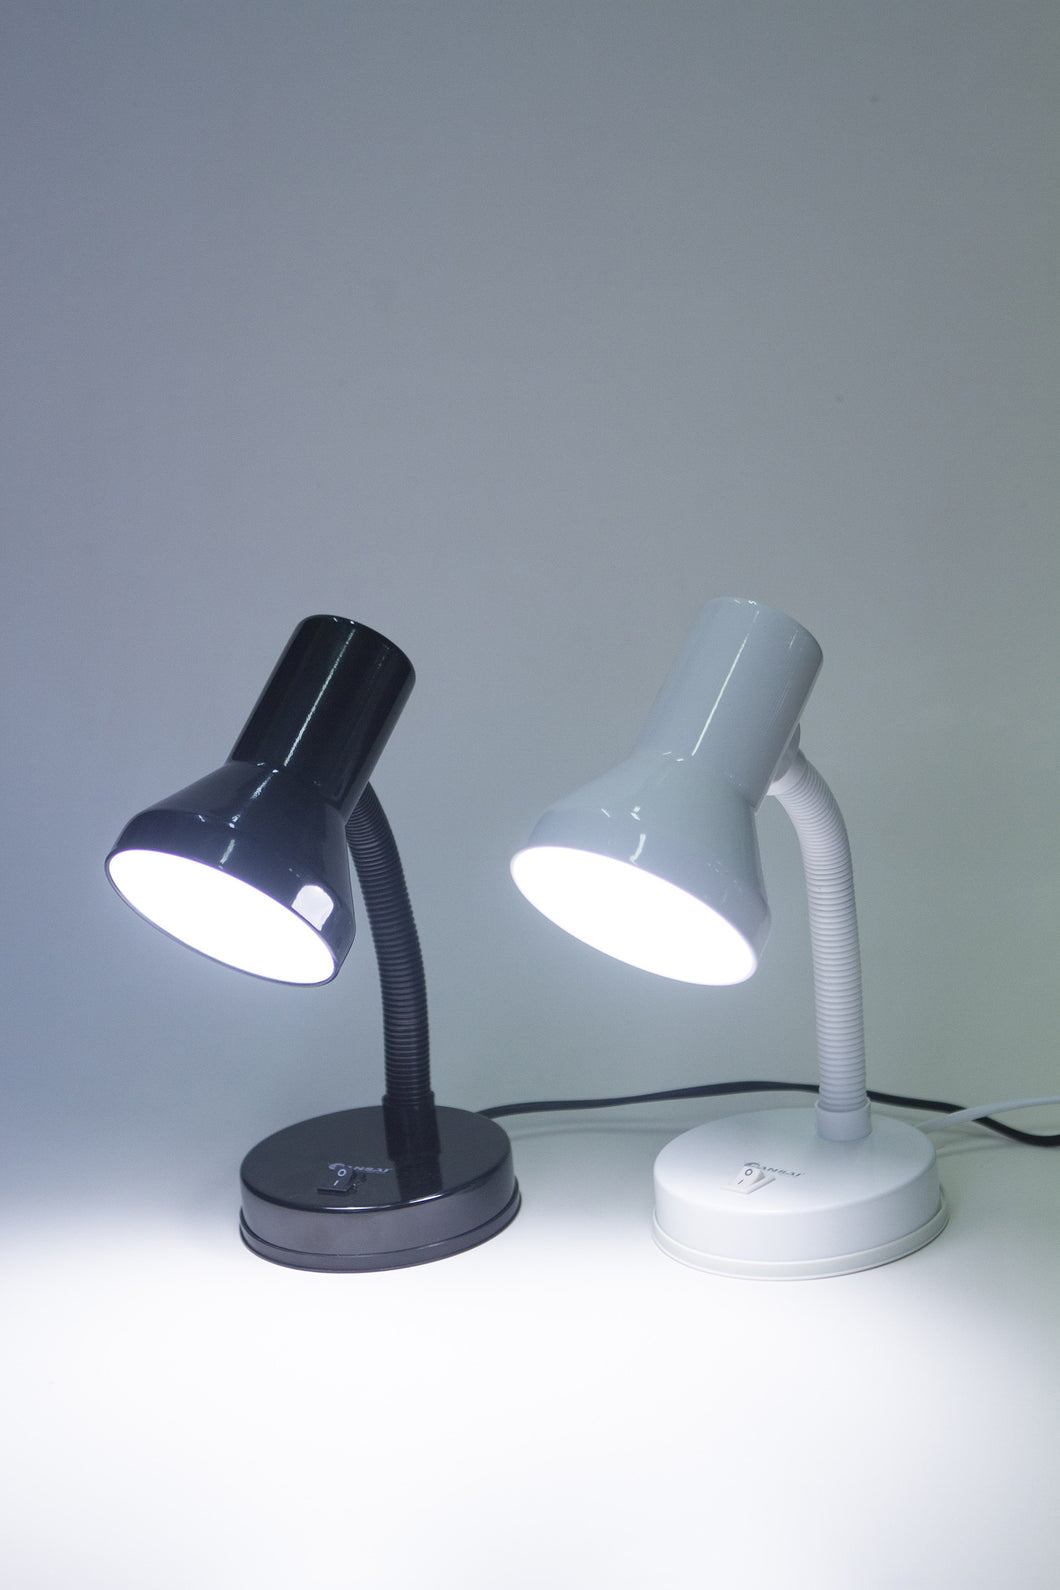 Sansai Student Desk Lamp